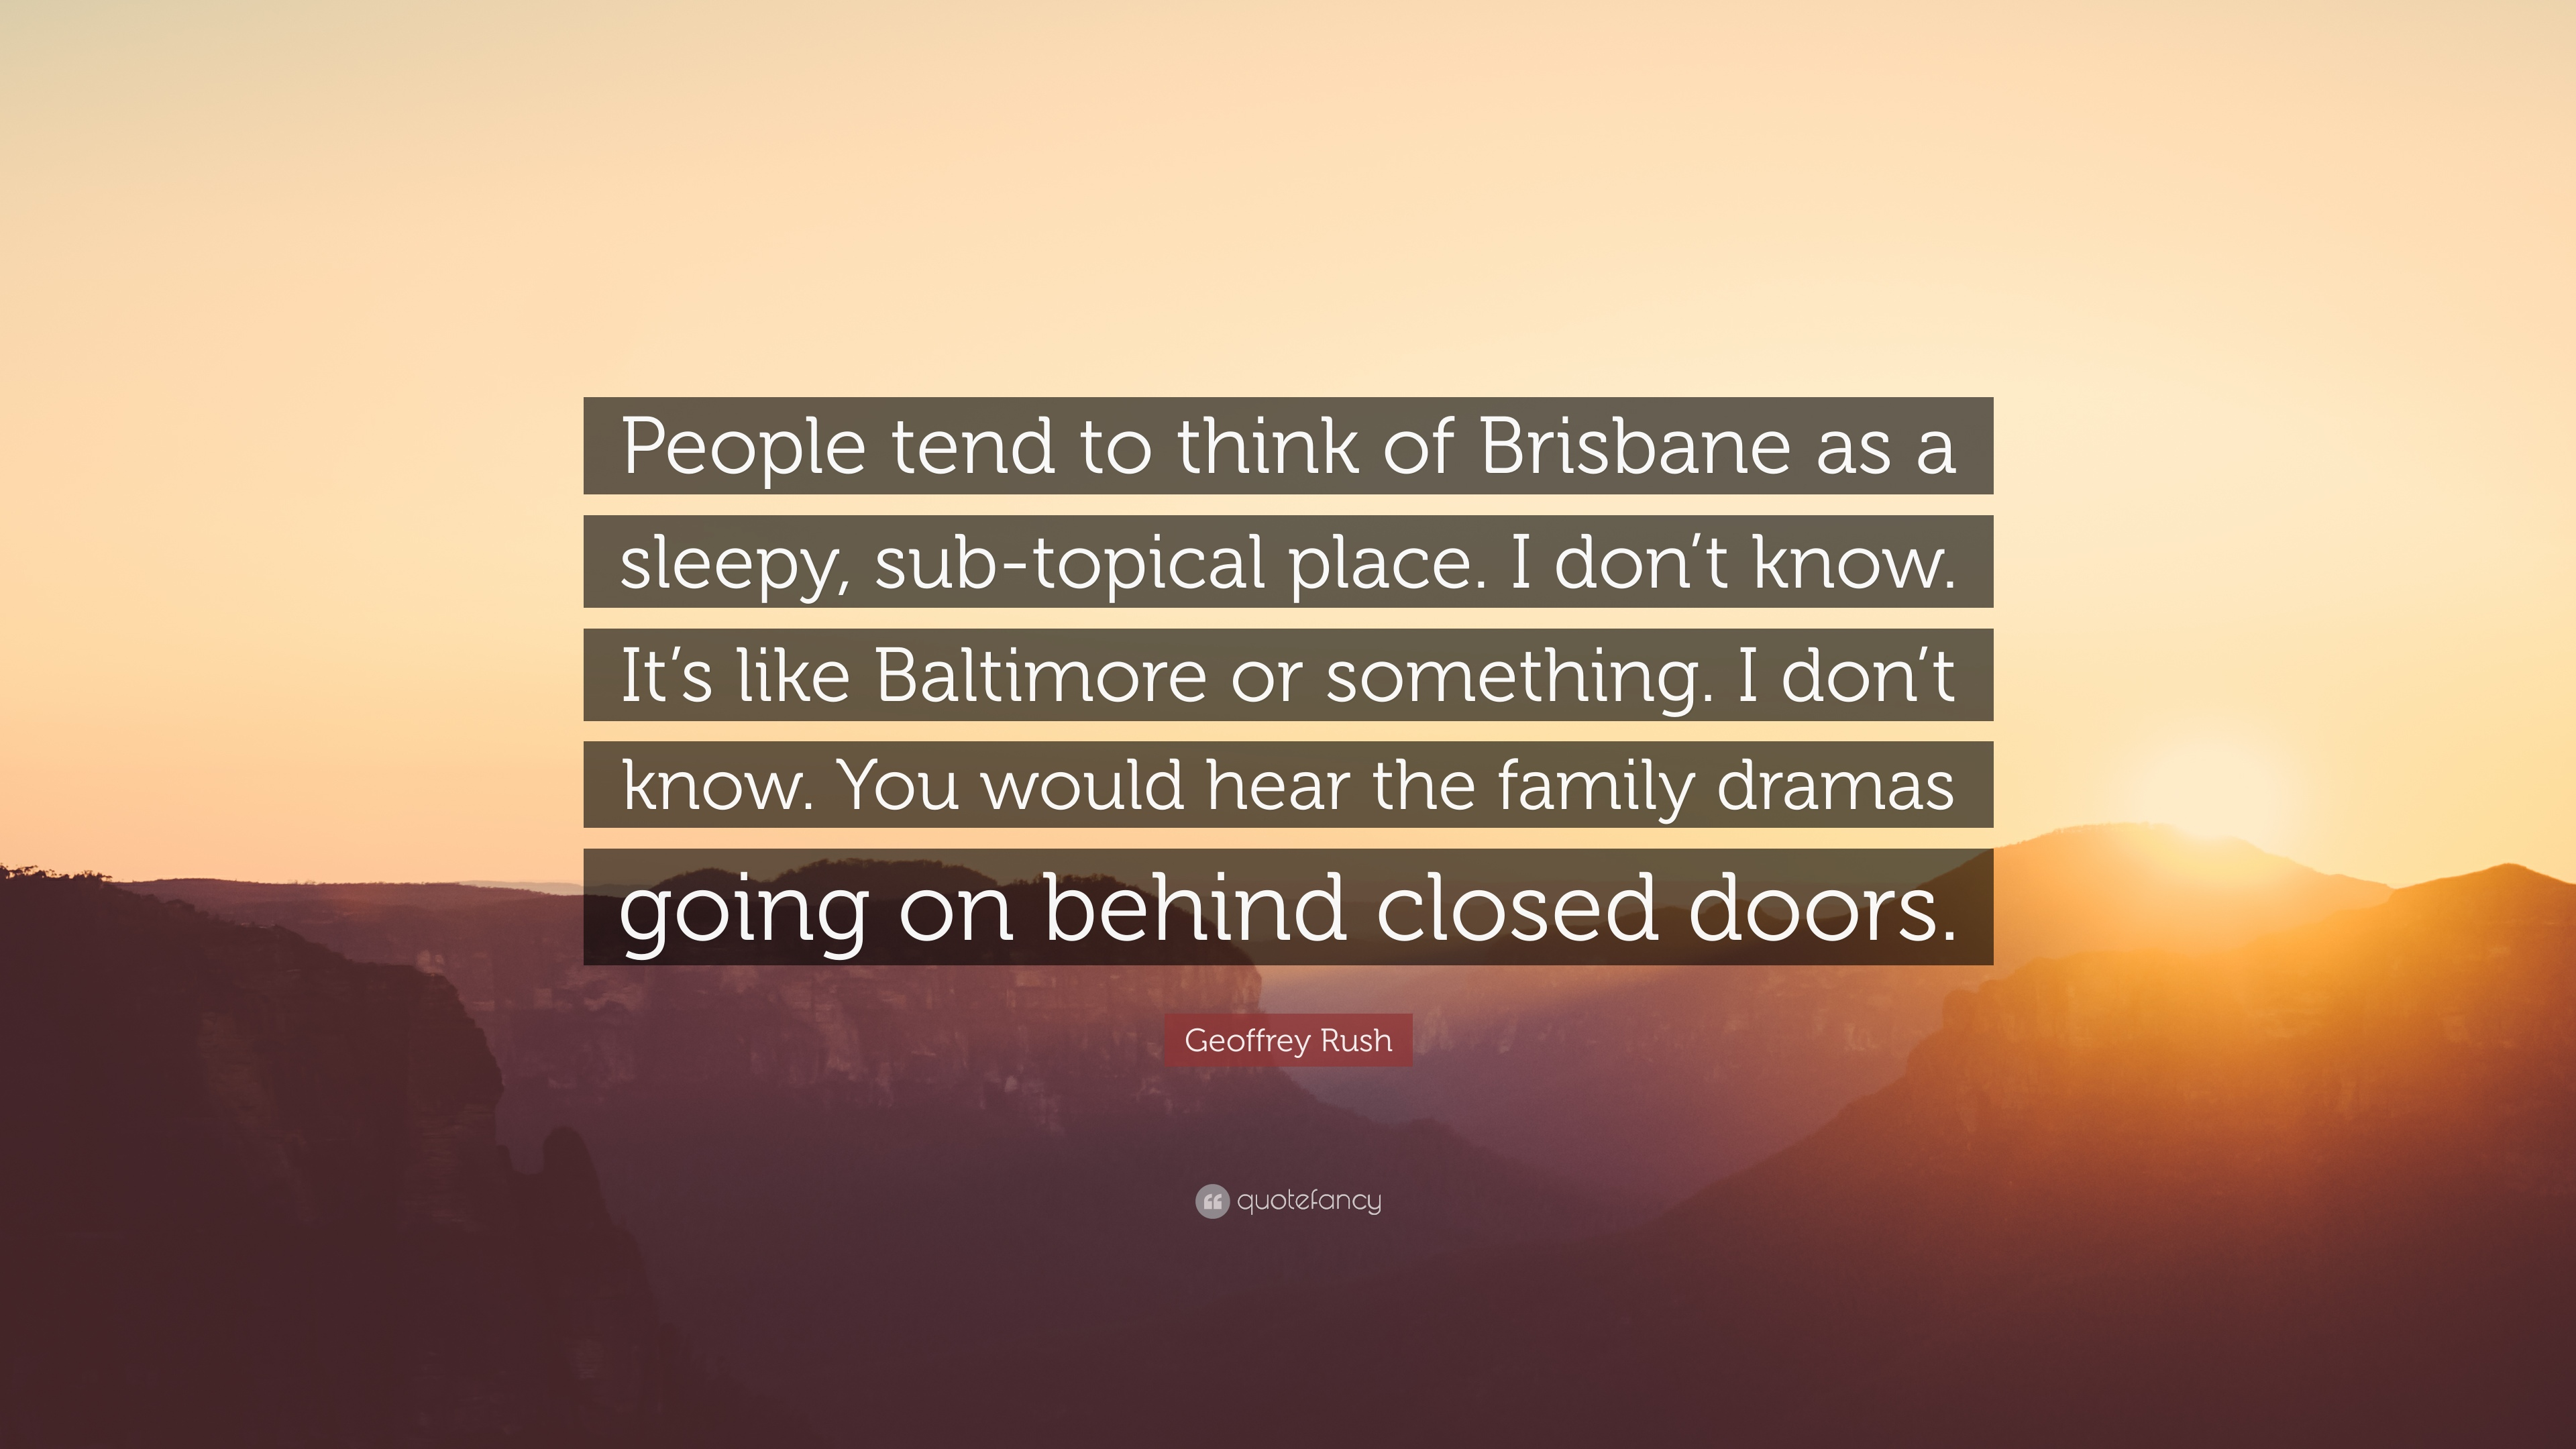 geoffrey rush quote \u201cpeople tend to think of brisbane as a sleepygeoffrey rush quote \u201cpeople tend to think of brisbane as a sleepy, sub